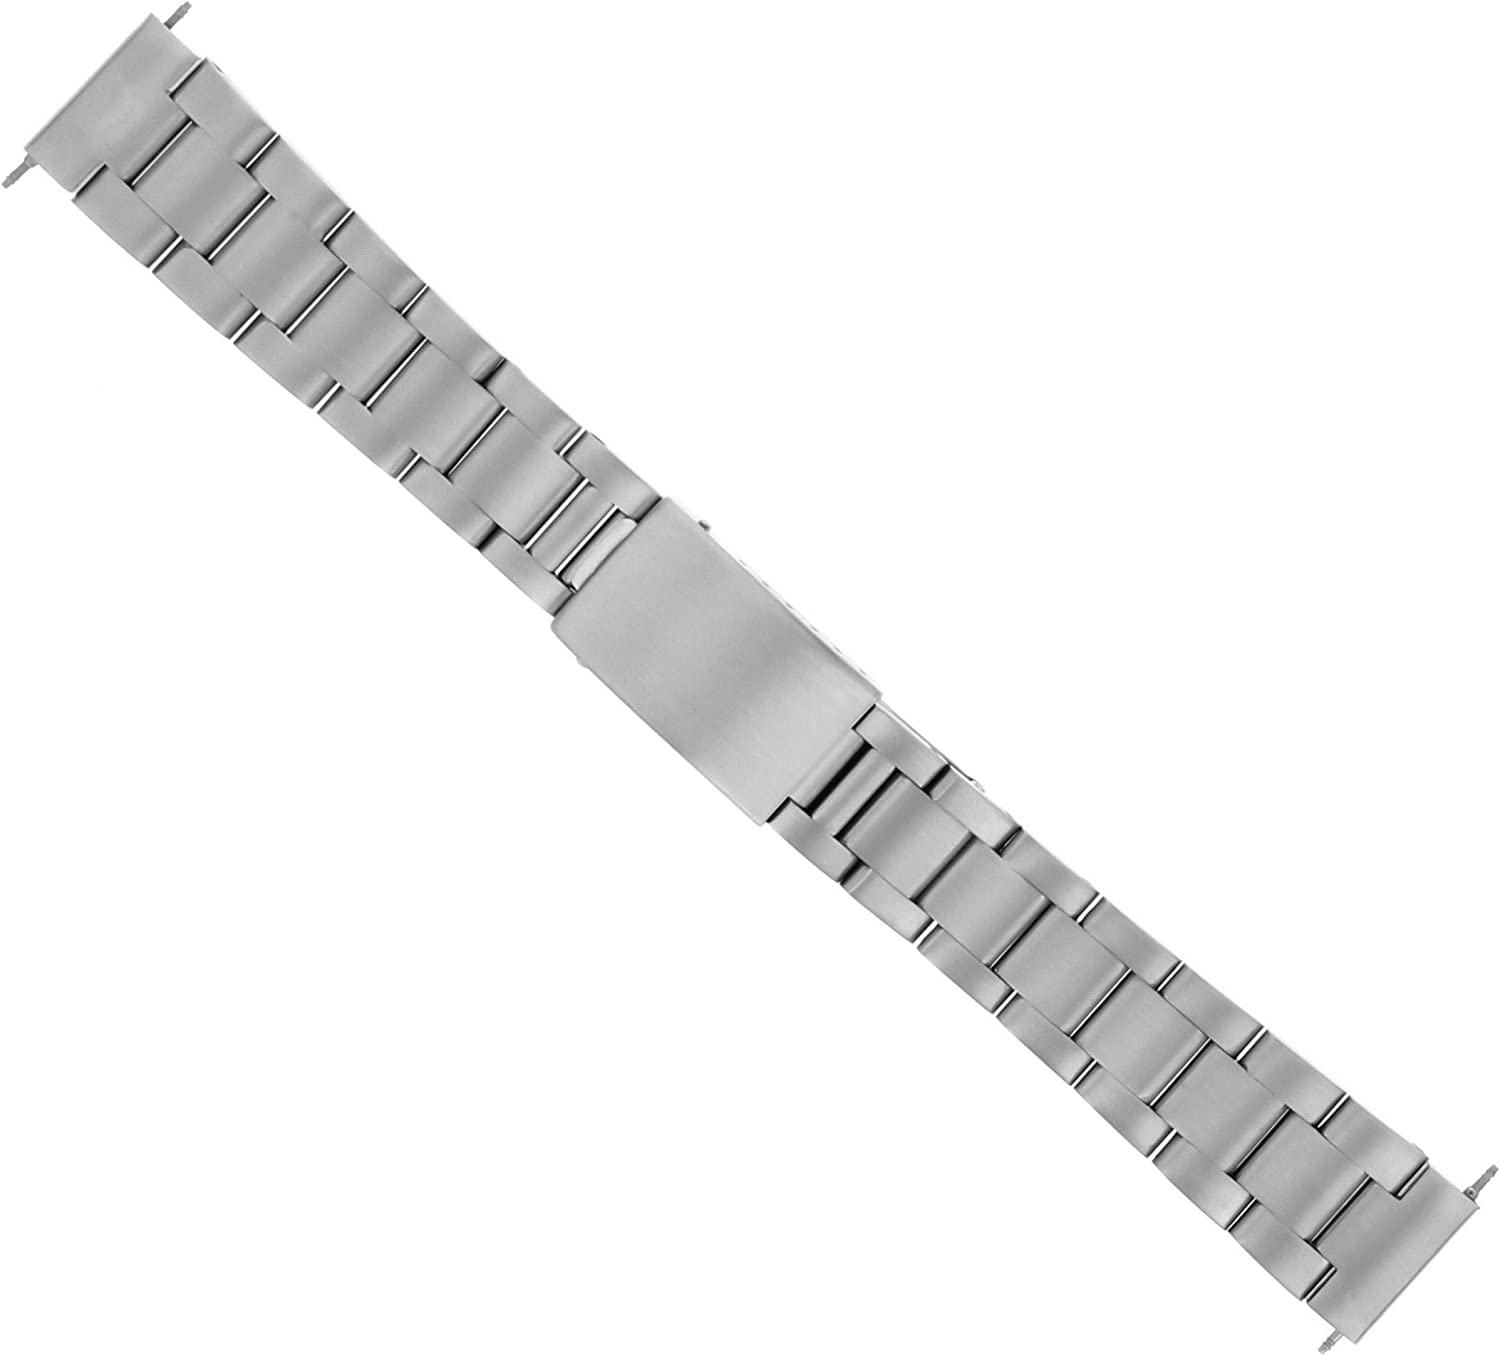 Today's only Solid Heavy Duty Oyster Band Tudor with Subm Bracelet Compatible Many popular brands